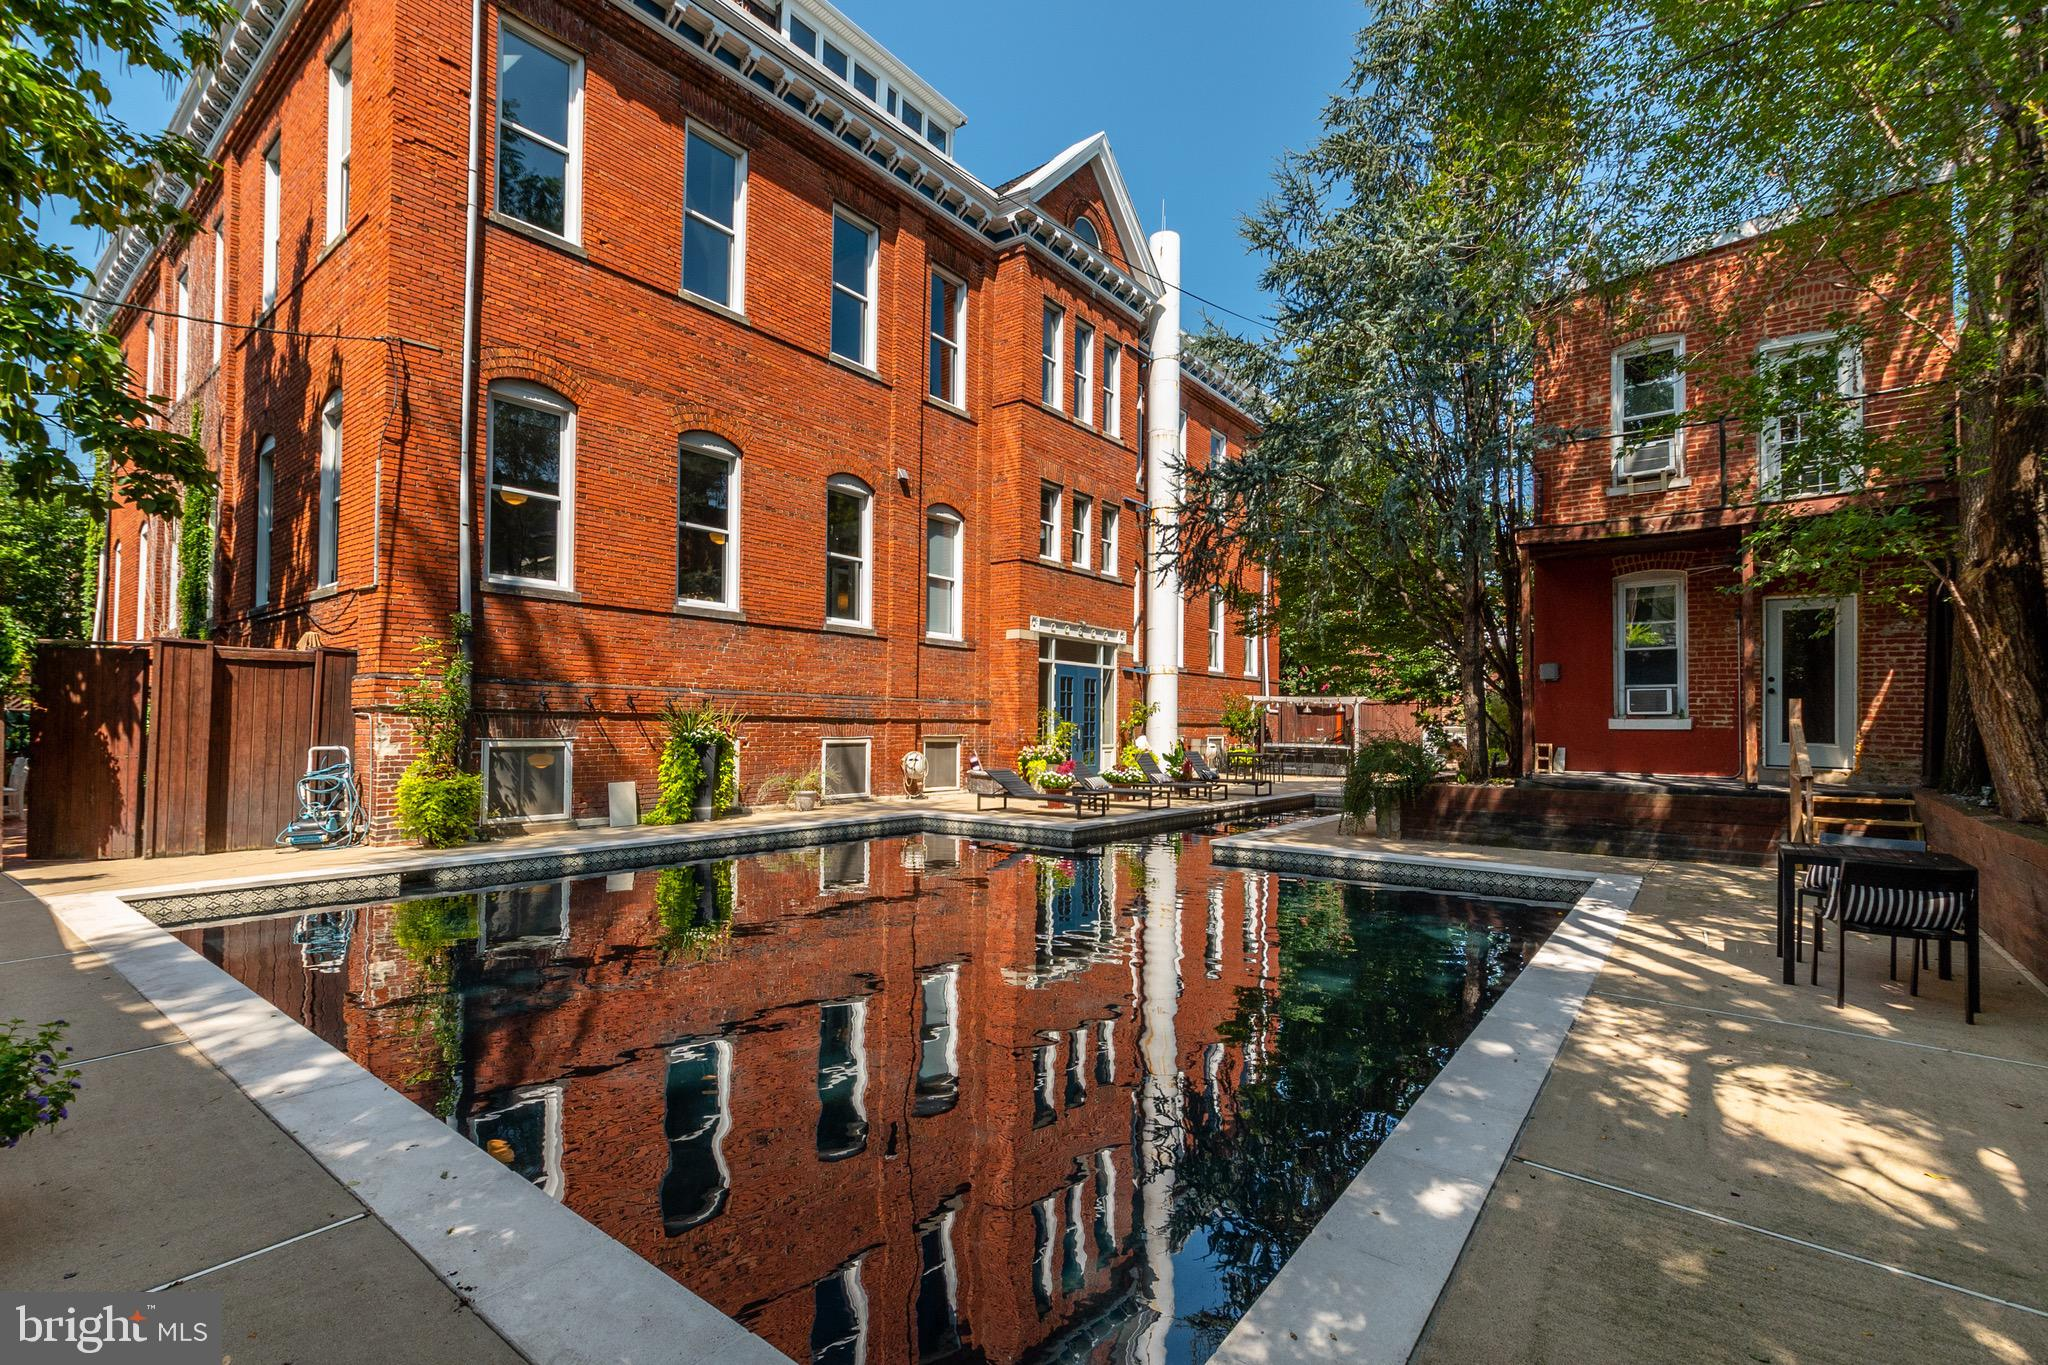 Light and airy 1 bed / 1 bath condo with massive private patio & black bottom pool! With over 1300 s